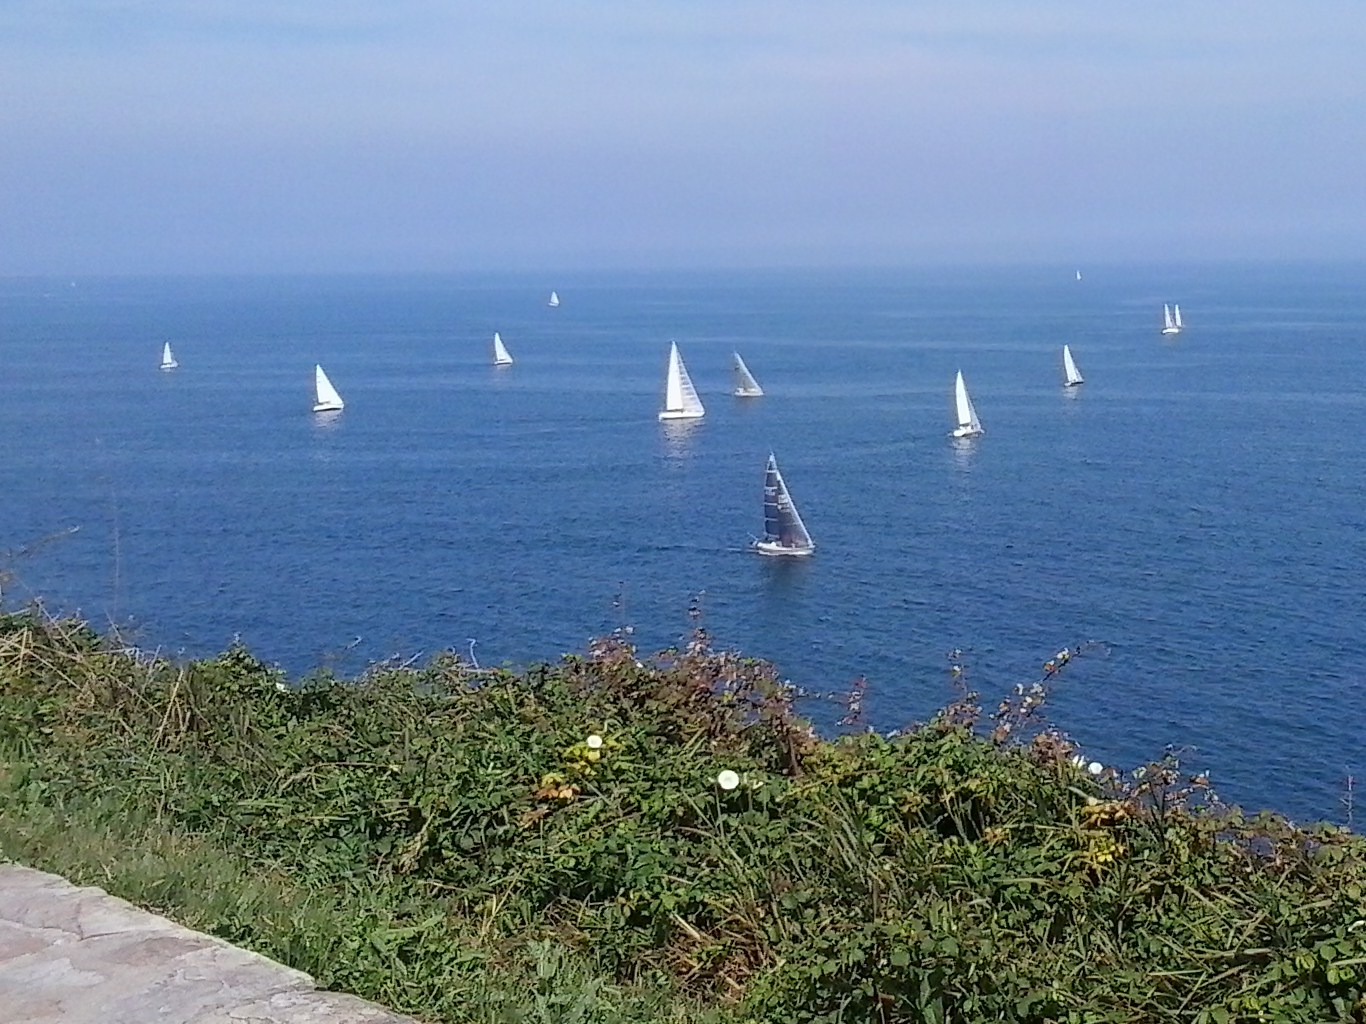 Gijón – Providencia: What better way to spend the day than on a coastal walk watching the world go by in boats!